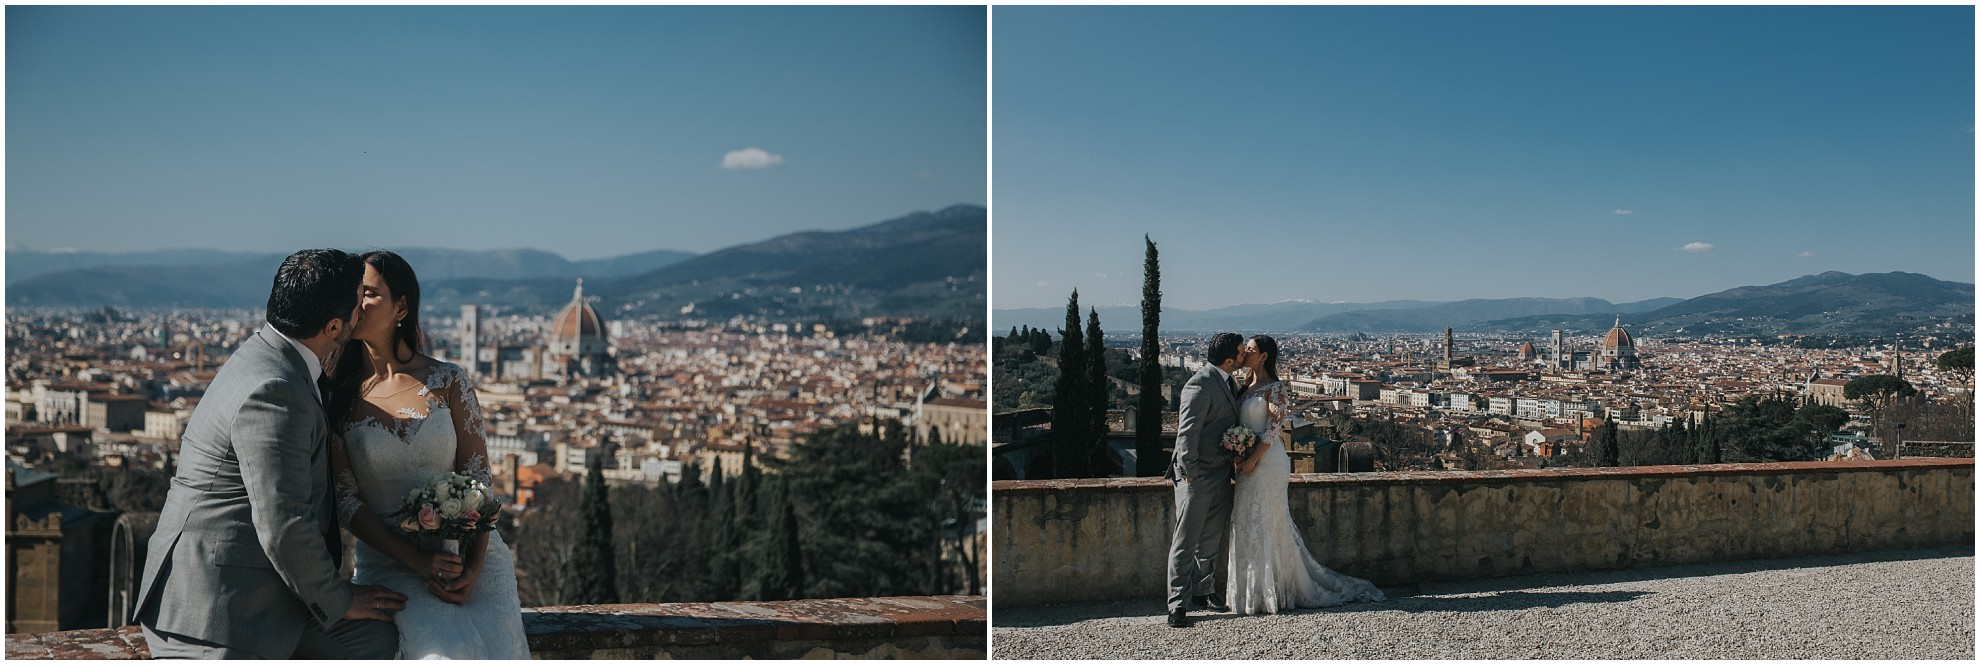 florence-wedding-photographer-040